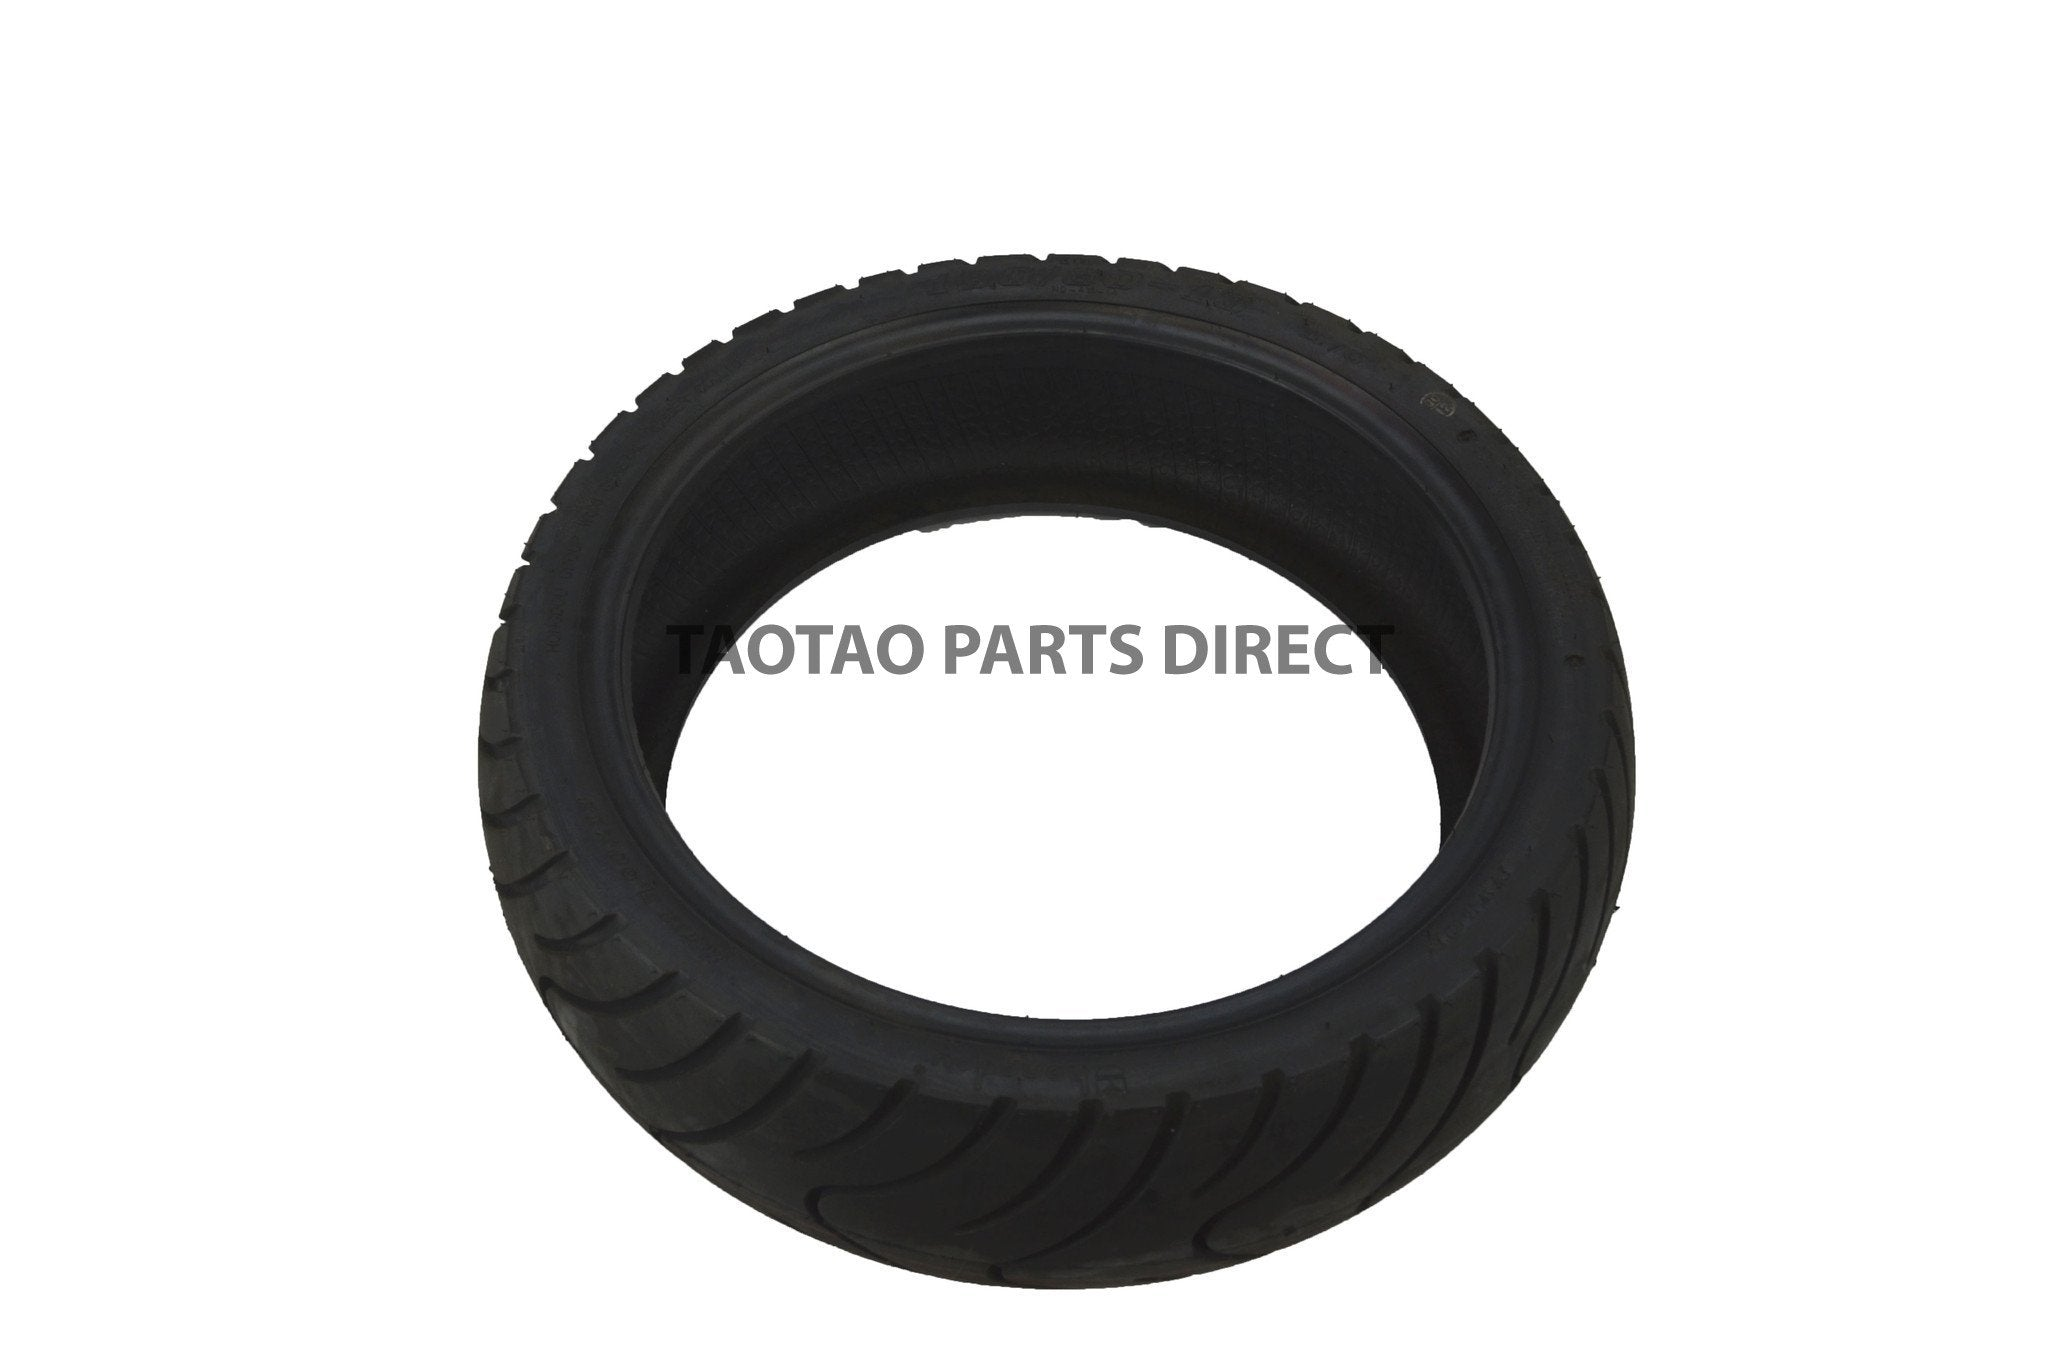 130x60-13 Tire - TaoTaoPartsDirect.com